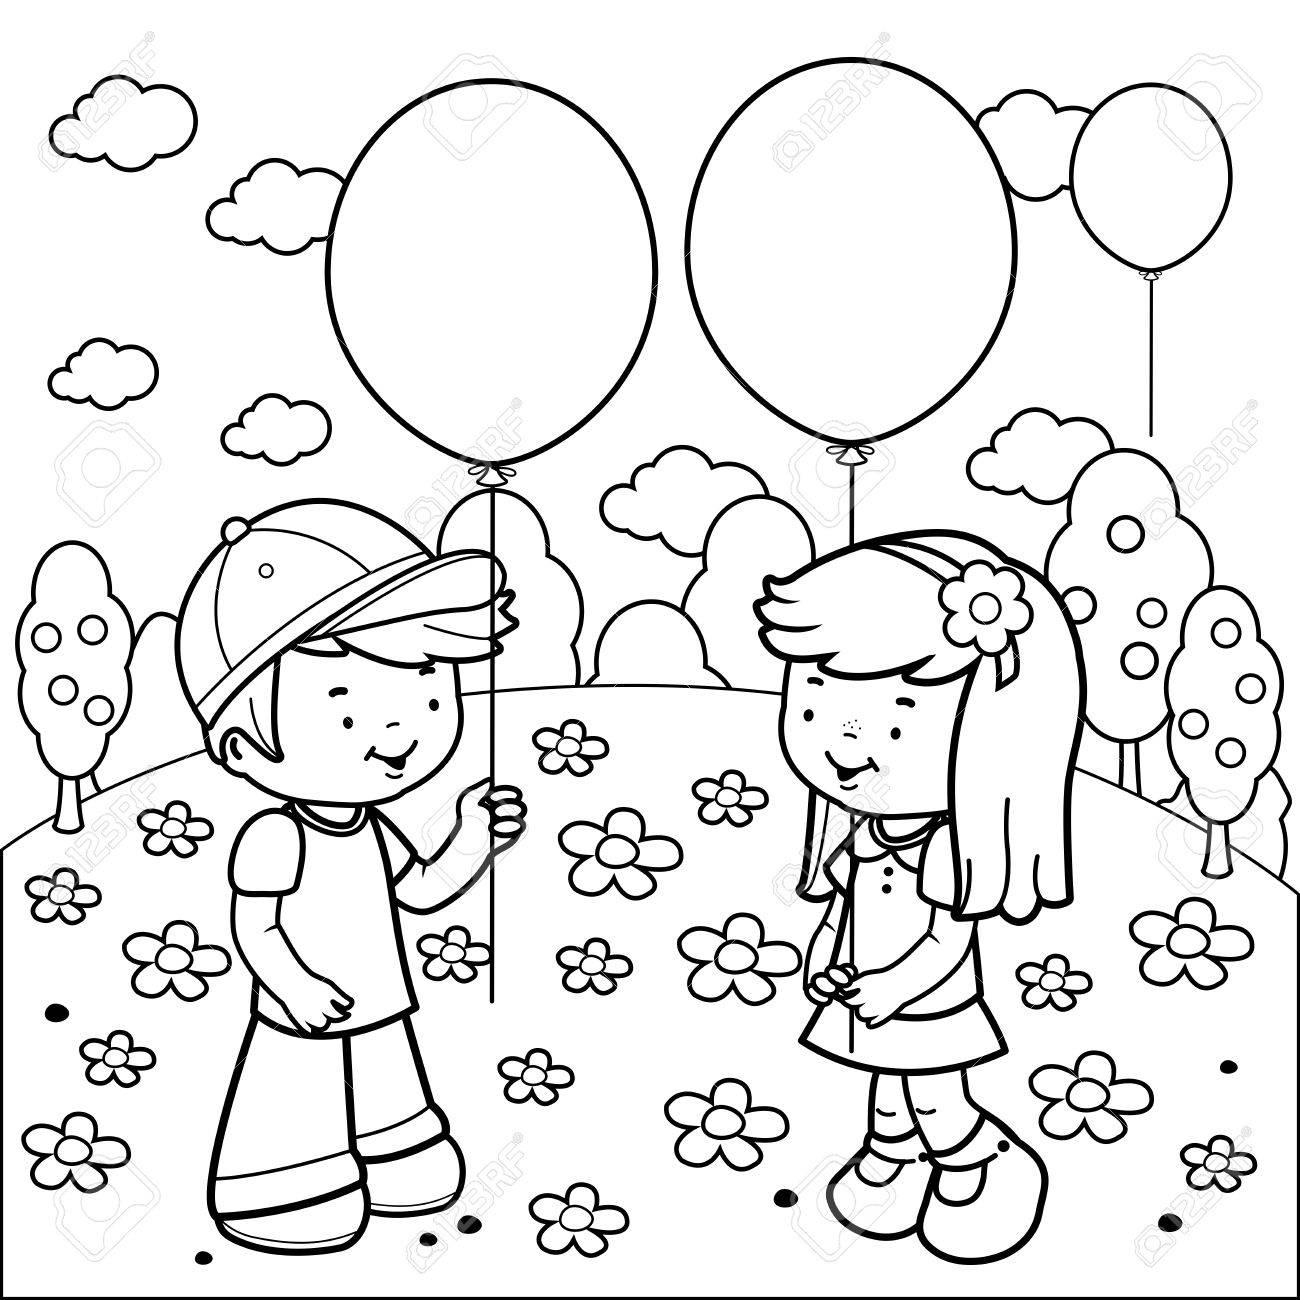 children at the park playing with balloons. black and white coloring